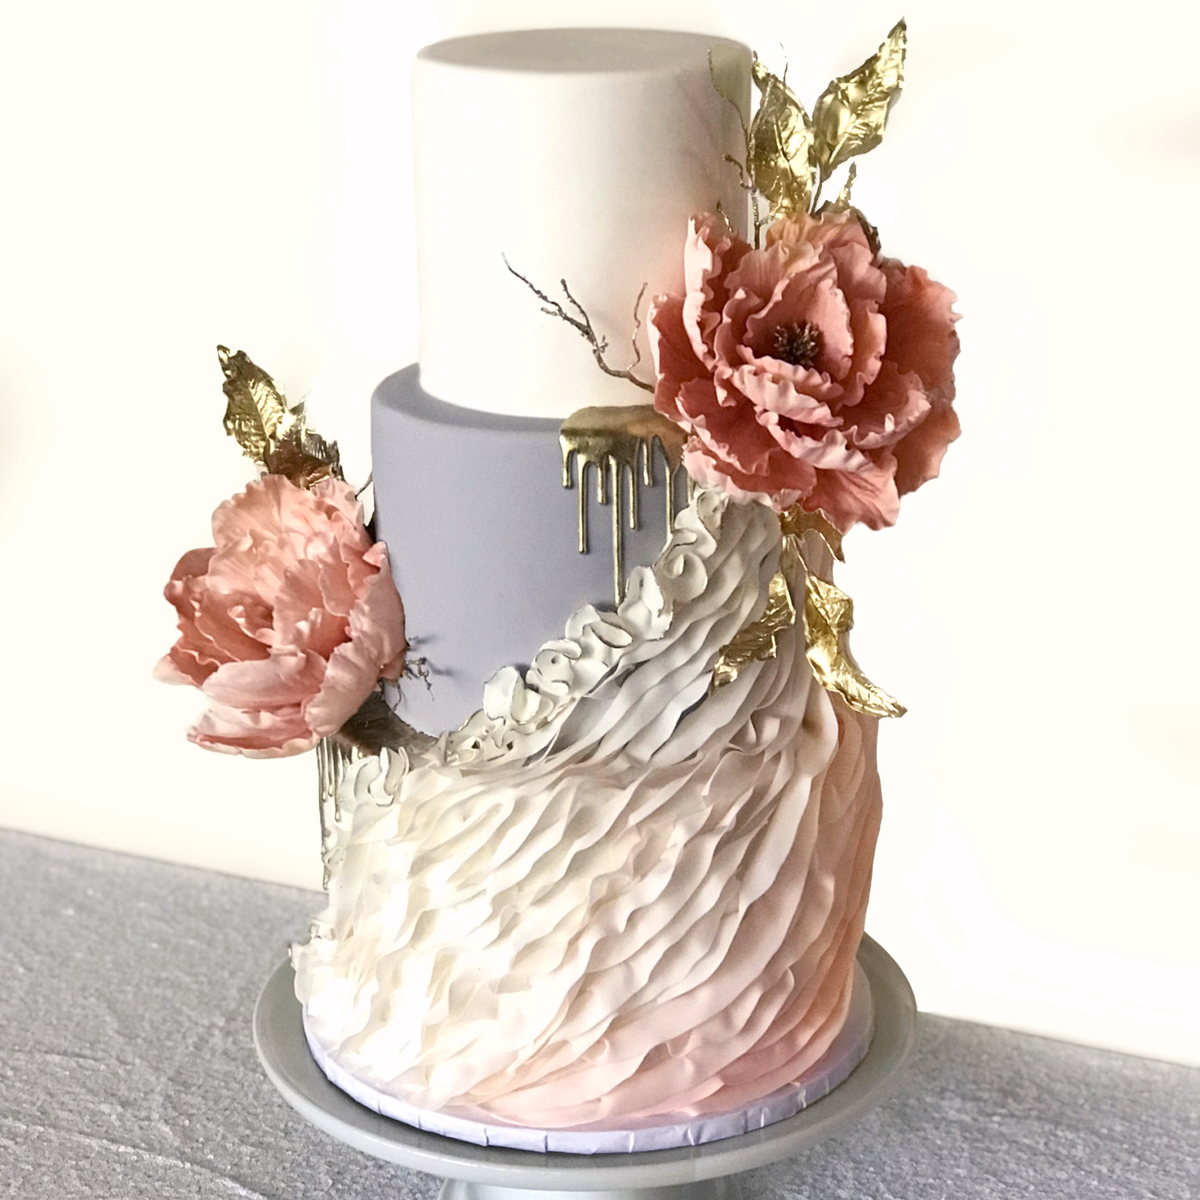 Whippt Desserts - Wedding Cake June 2019 - middle